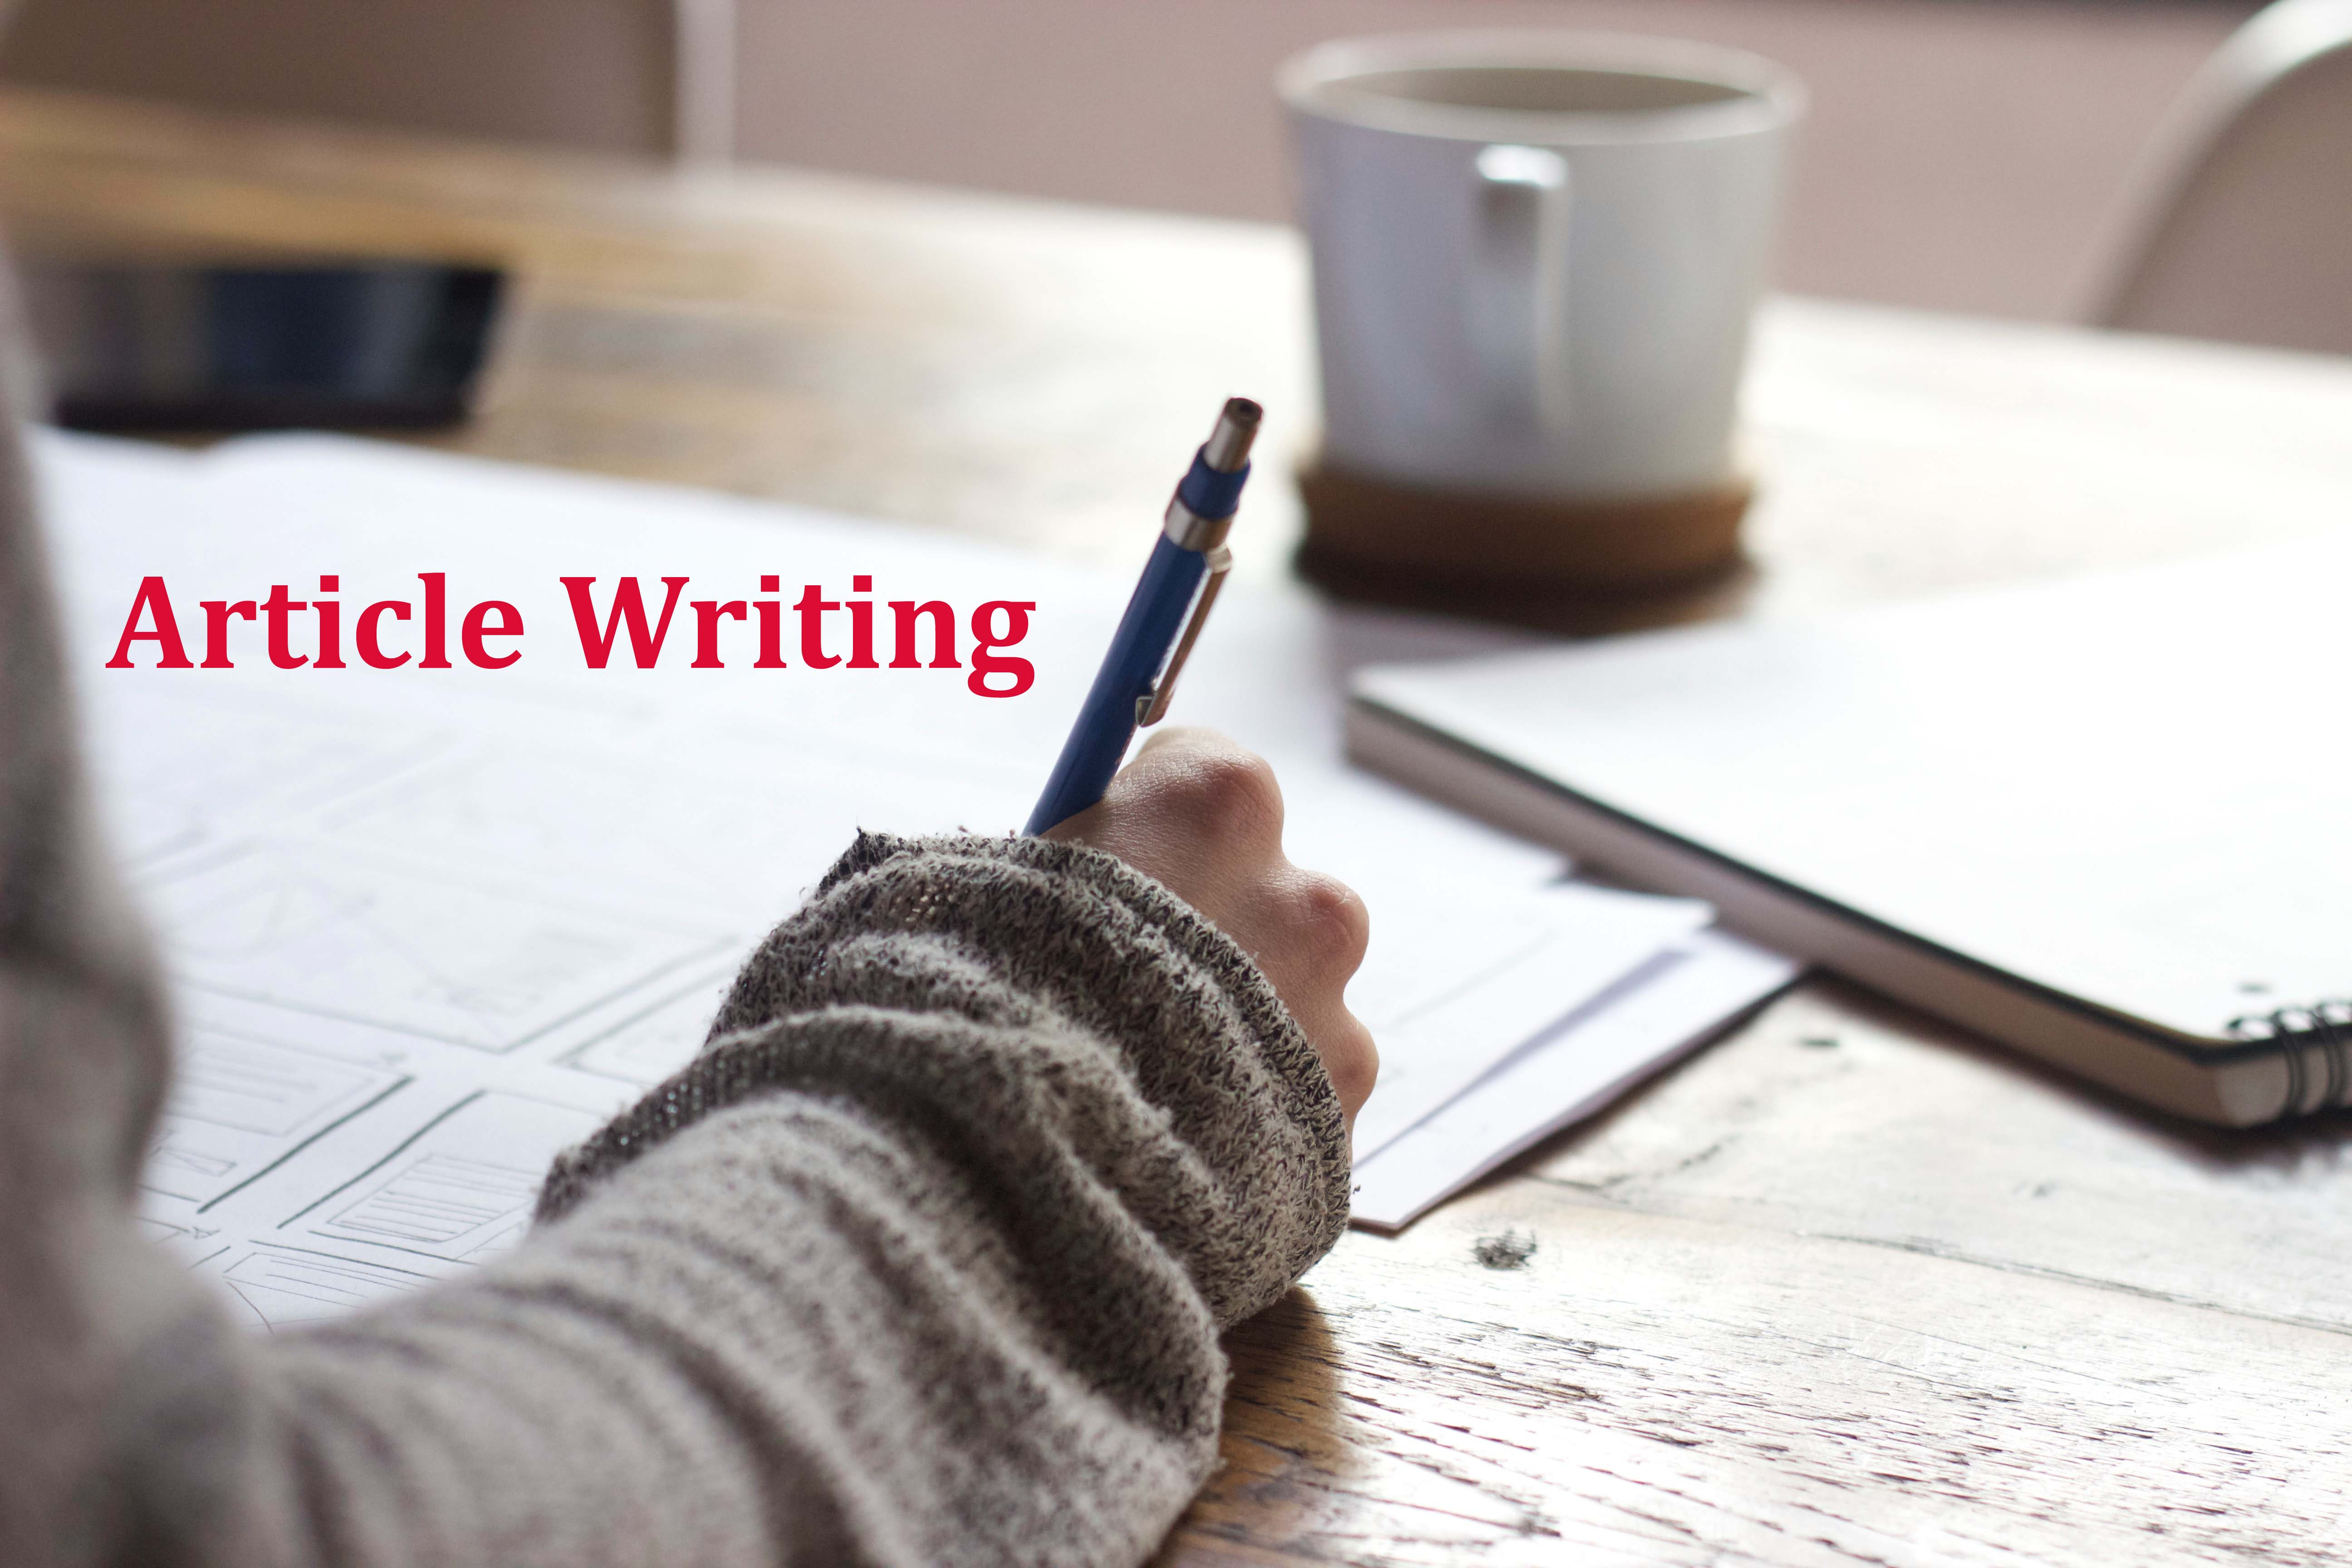 I will write 1000 words professional article/content on any topic